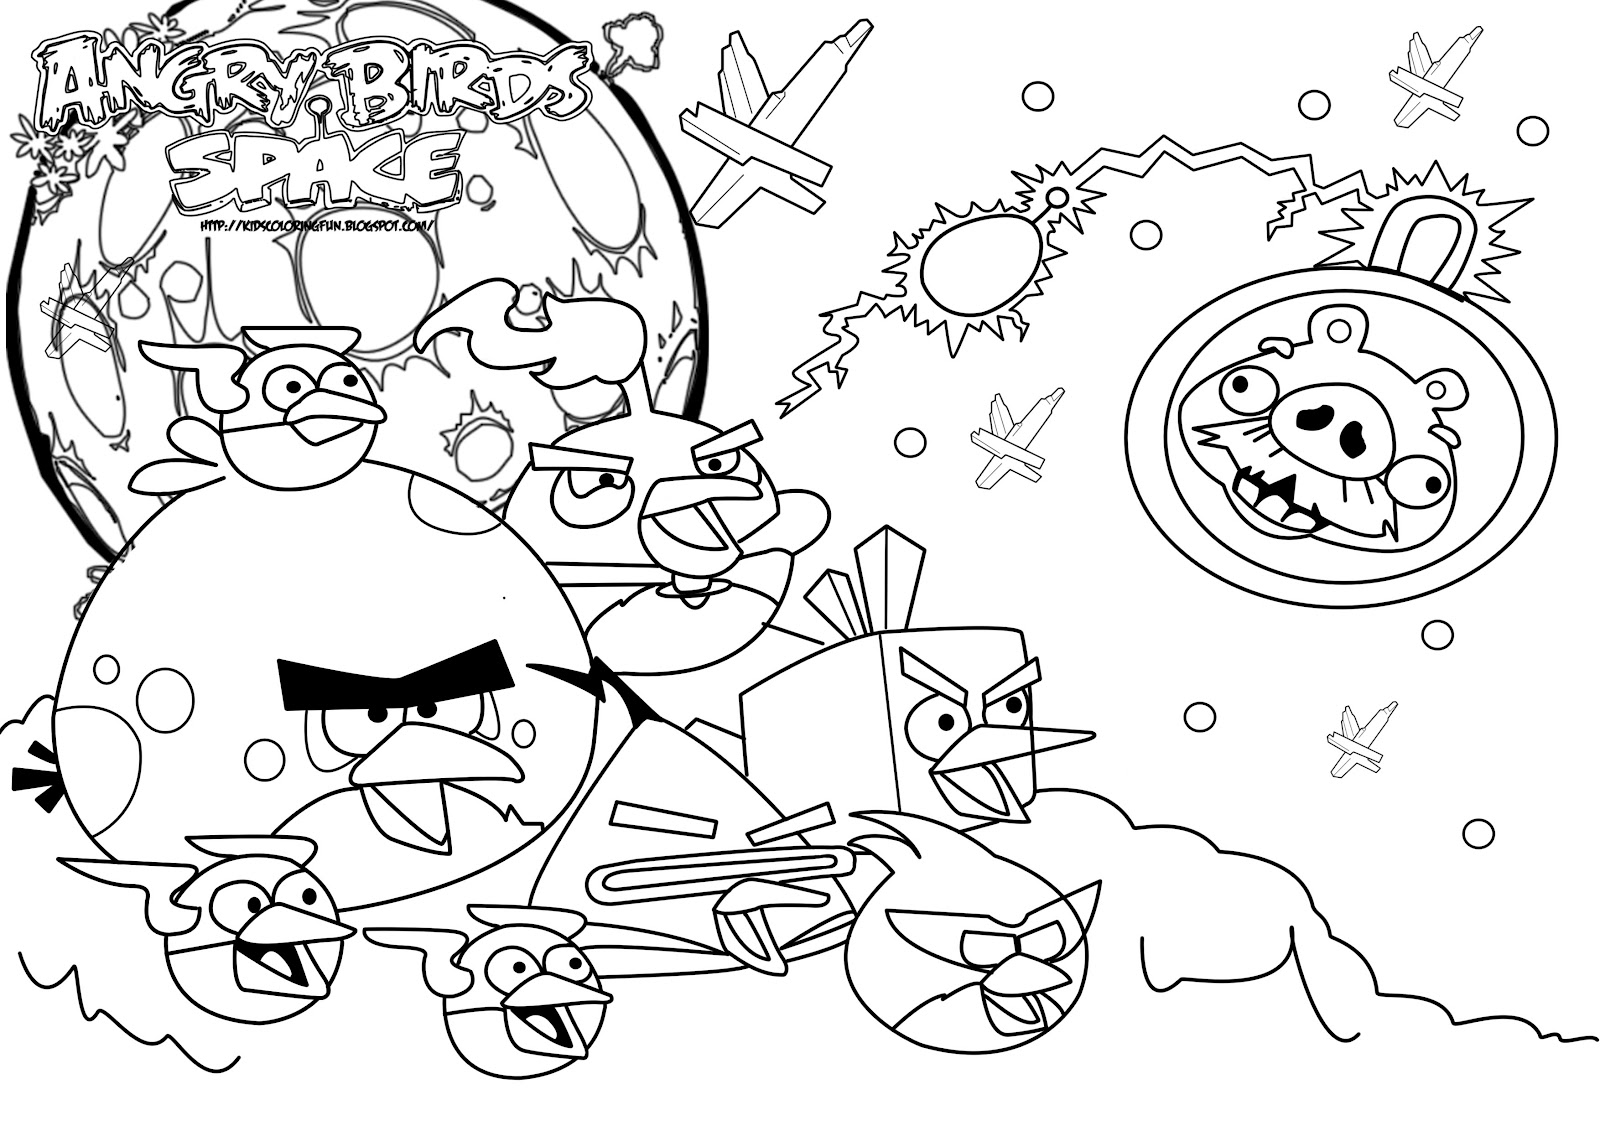 angry birds coloring pages unique comics animation most useful angry birds coloring coloring pages angry birds